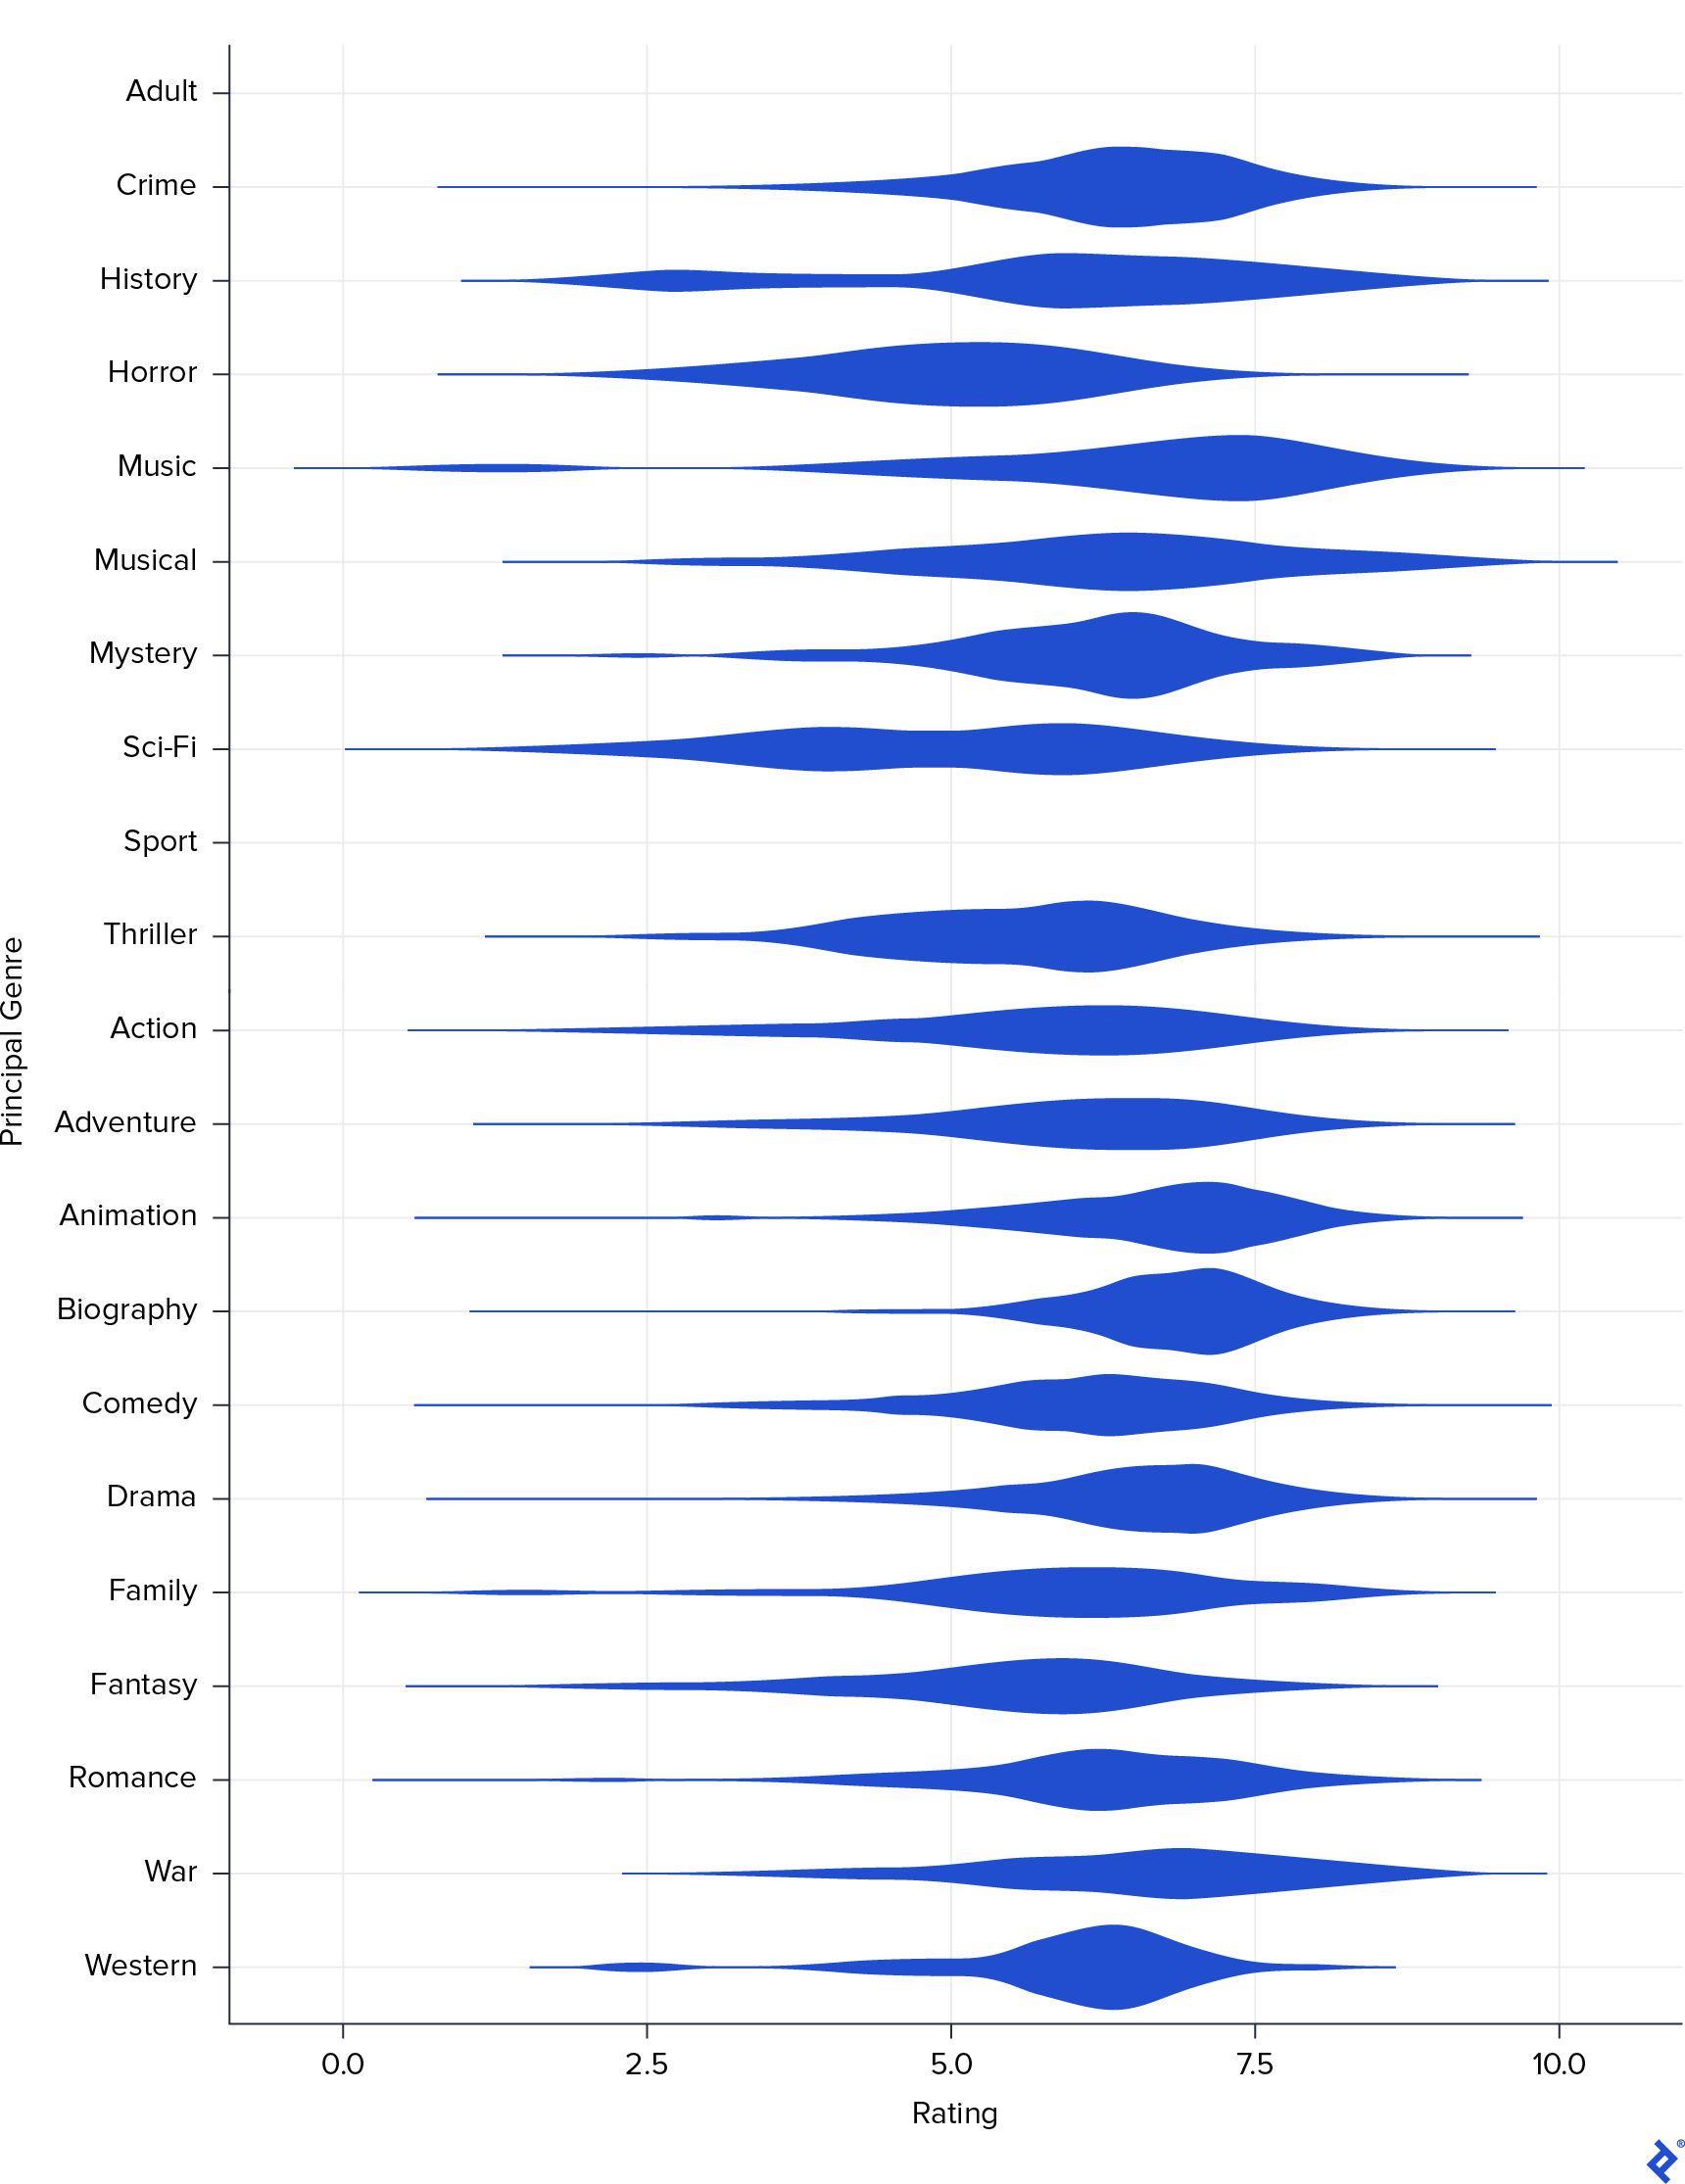 A violin plot showing the rating distribution for each genre.